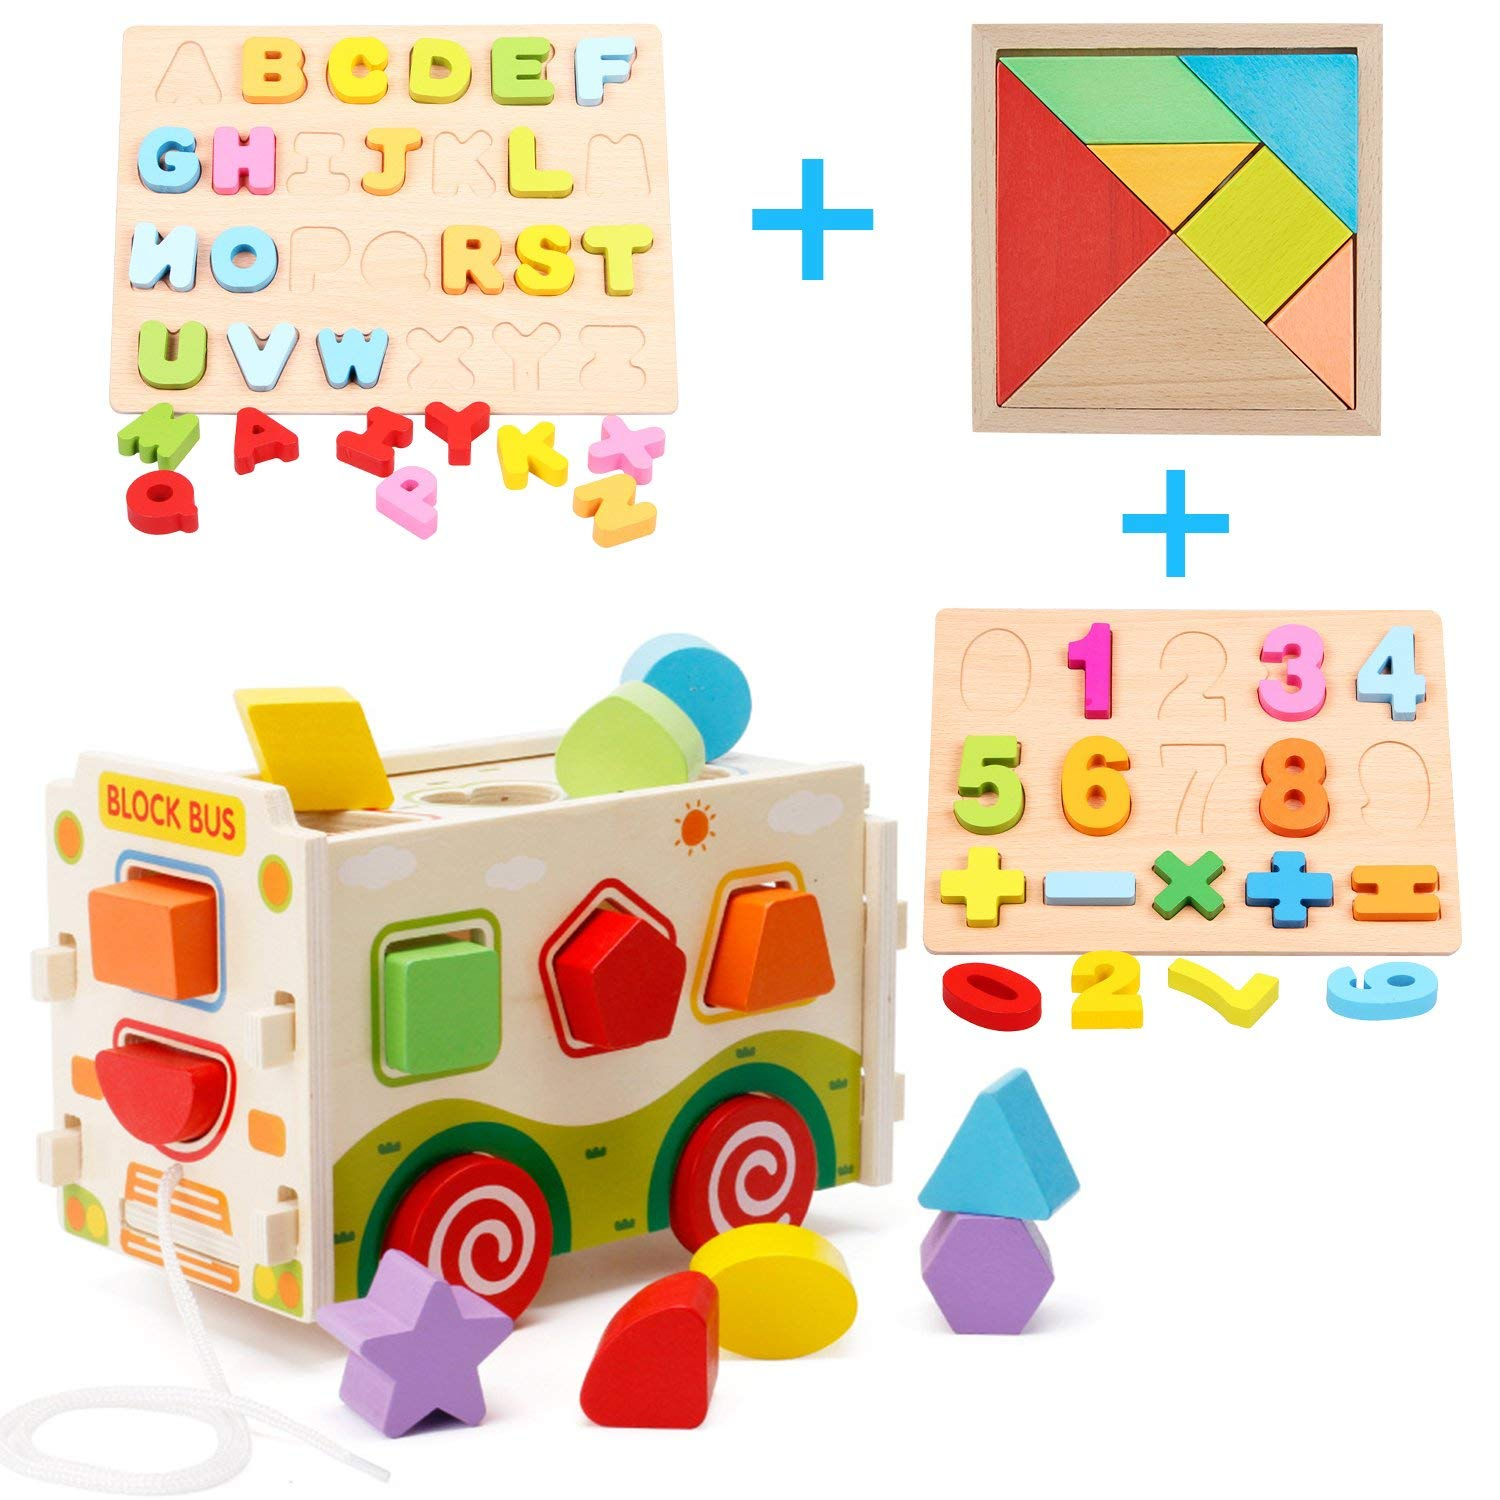 Wooden Shape Sorter Toys,Wooden Shape Sorter Bus with Tangram & Number Puzzle Board & Alphabet Puzzle Board, Classic 3D Push Pull Truck Toy for Toddlers Learning Sort and Match for 1 2 Year Old